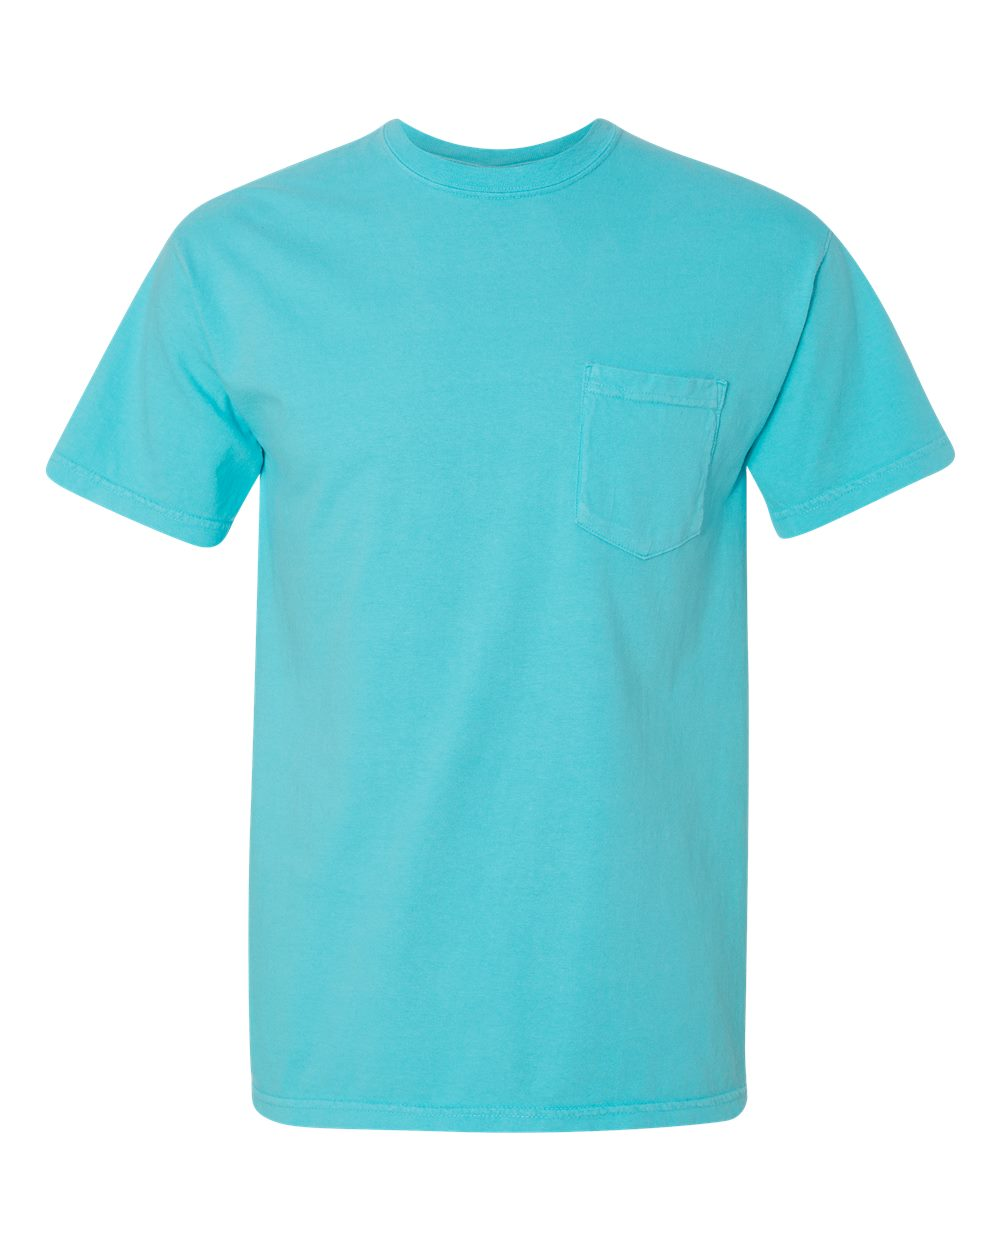 968ad844 ... Comfort Colors 6030 Pigment Dyed Short Sleeve with a Pocket-*7-9 days